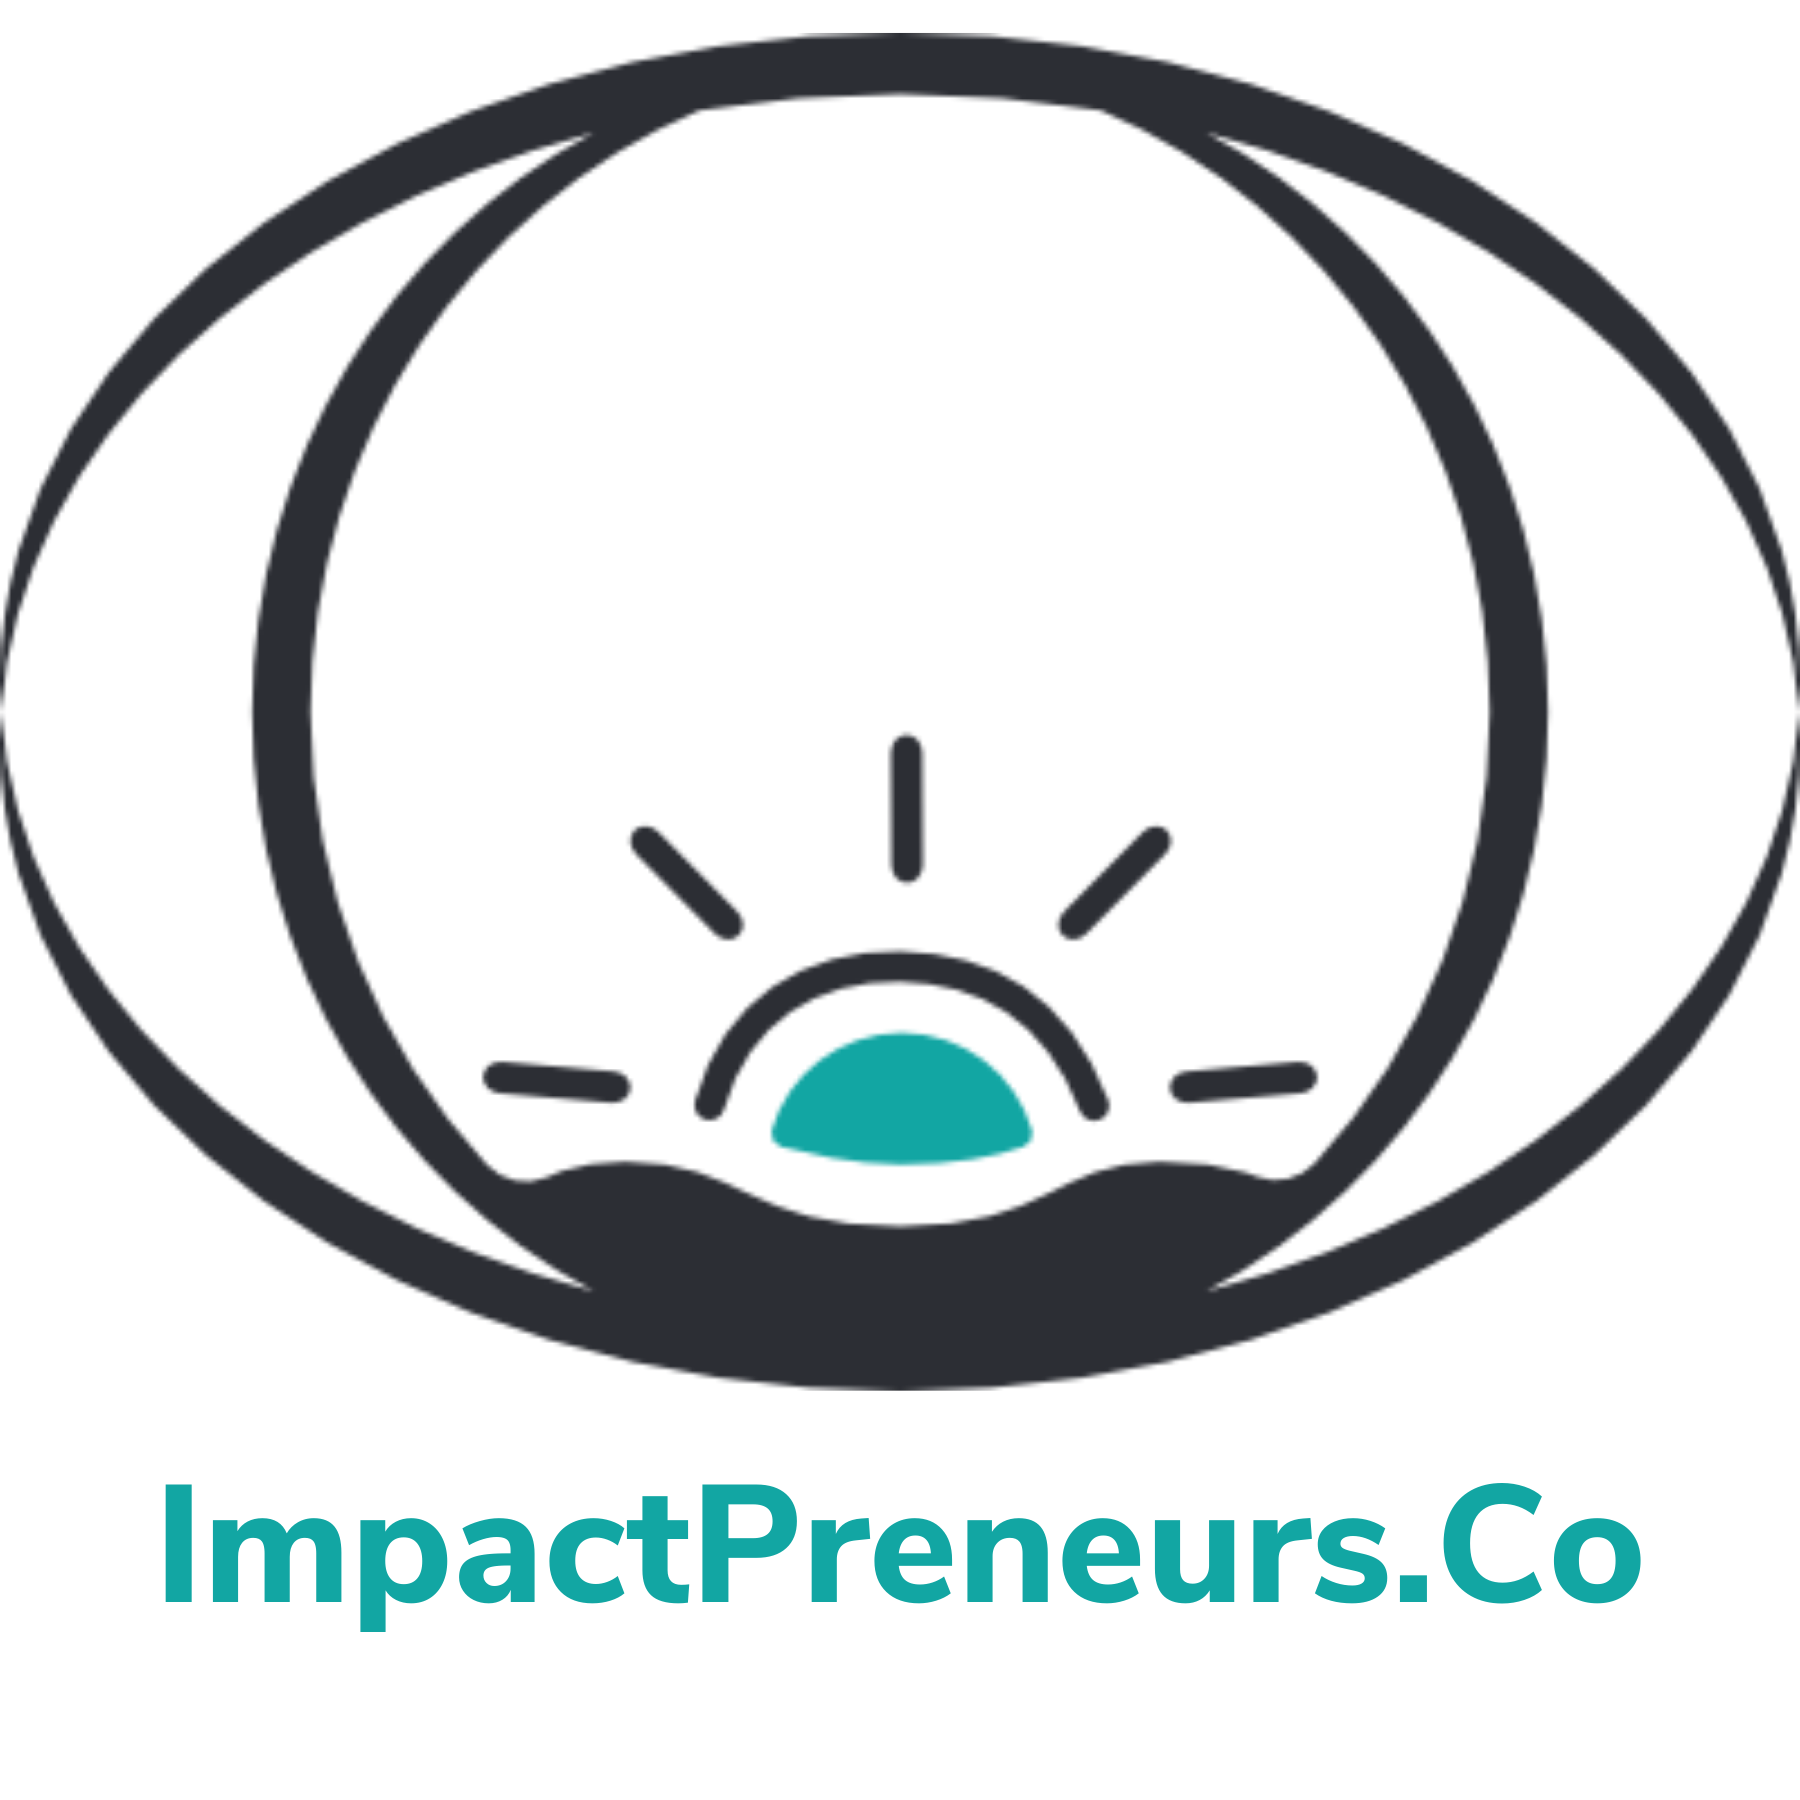 ImpactPreneurs.Co